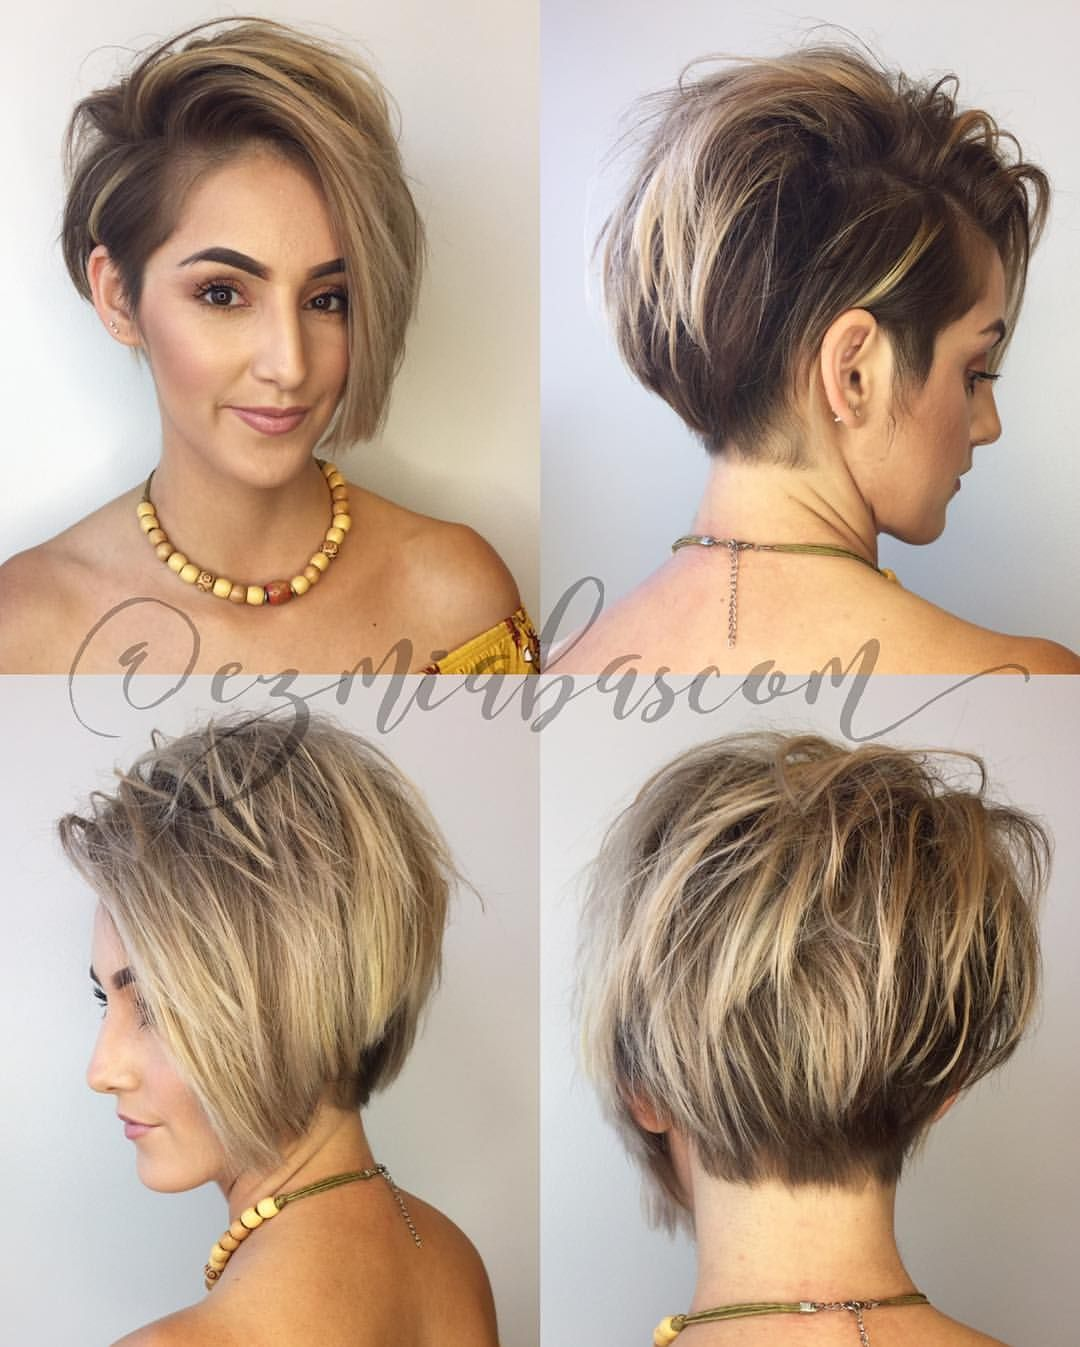 Beauty Grooming Style: Pin By Ezmia's Own Trend On Hair & Beauty That I Love In